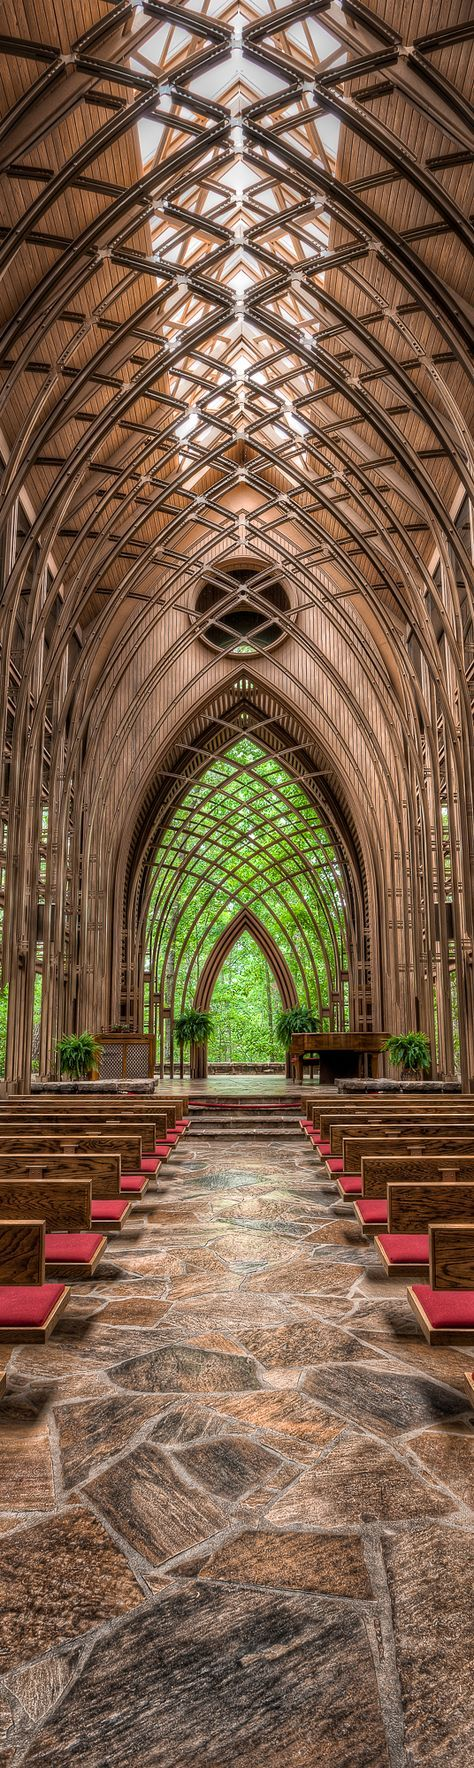 I took this photo one cloudy day in Bella Vista, AR Mildred B Cooper Memorial Chapel. This site was designed by E Fay Jones, an architect from Arkansas who was an apprentice of Frank Lloyd Wright. It has to be about the most perfect church for a small wedding anyone can imagine!